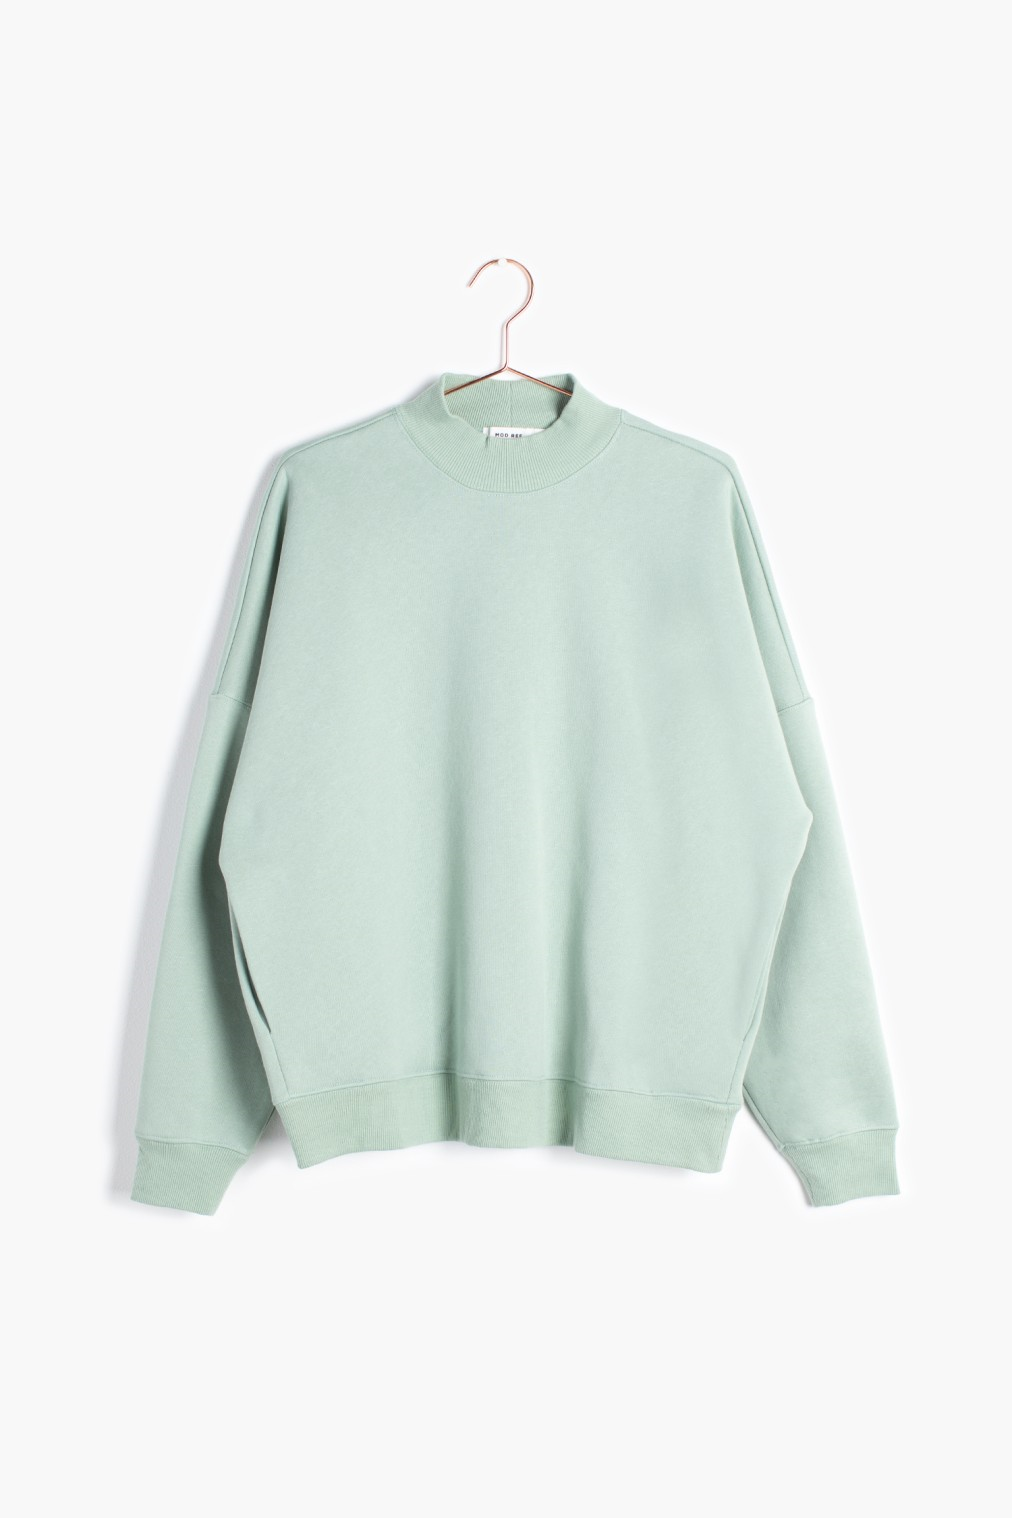 Sage Vibes Sweater